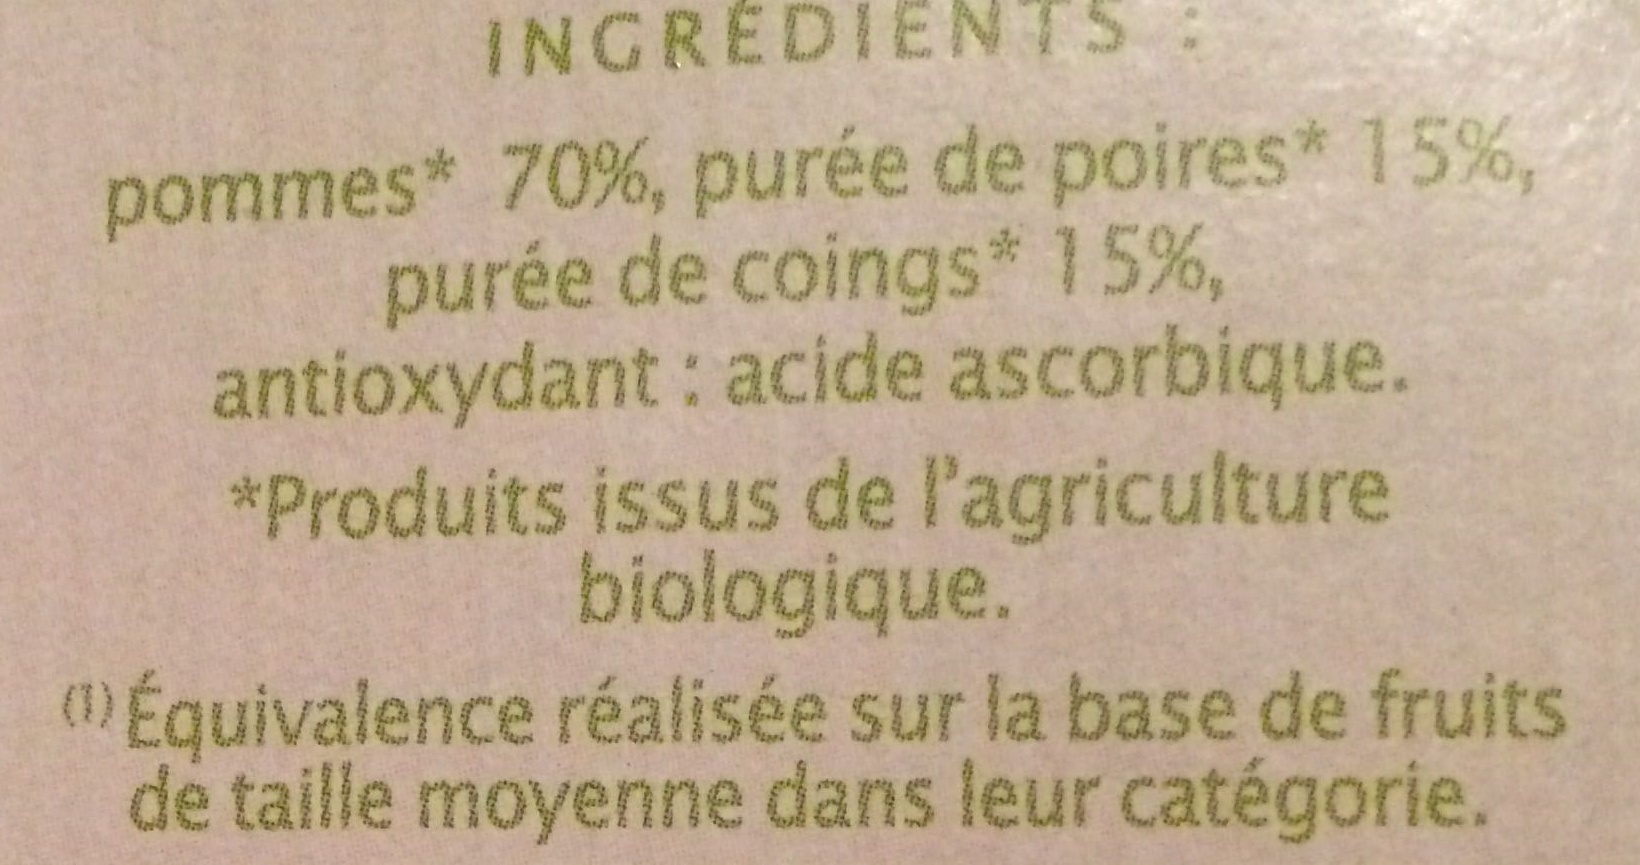 Pomme poire coing - Ingredients - fr